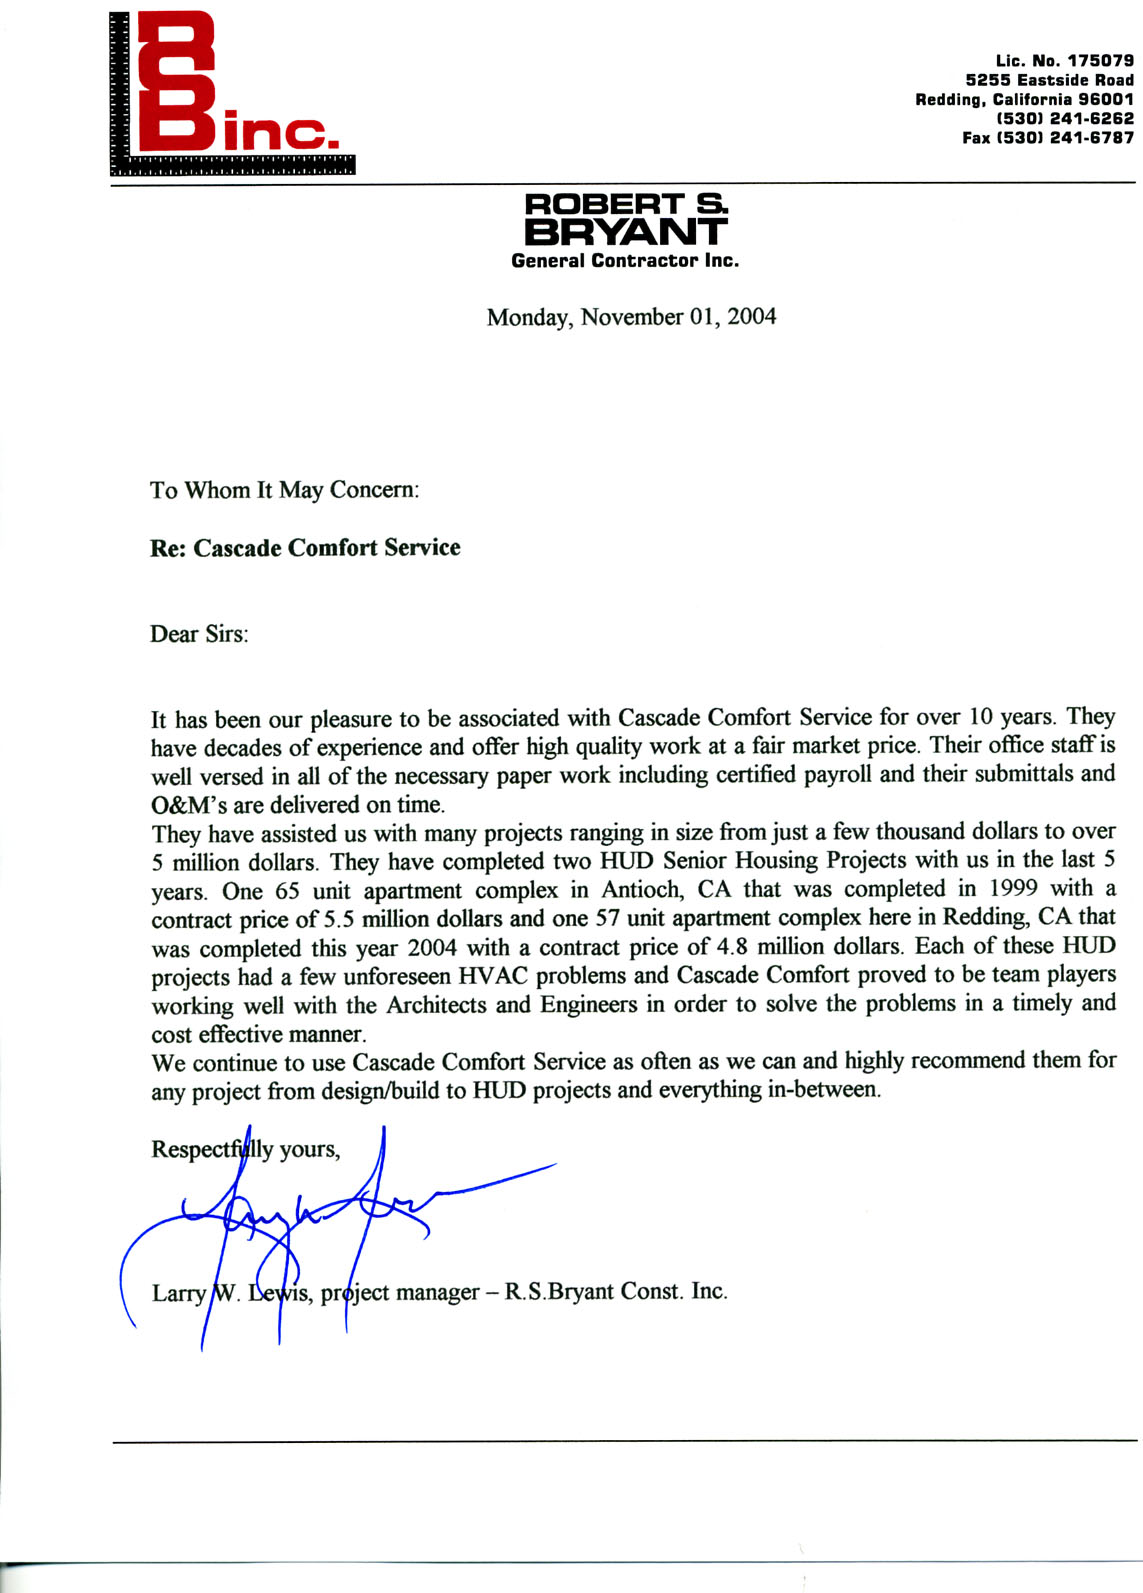 Letter of Recomend 3025.jpg